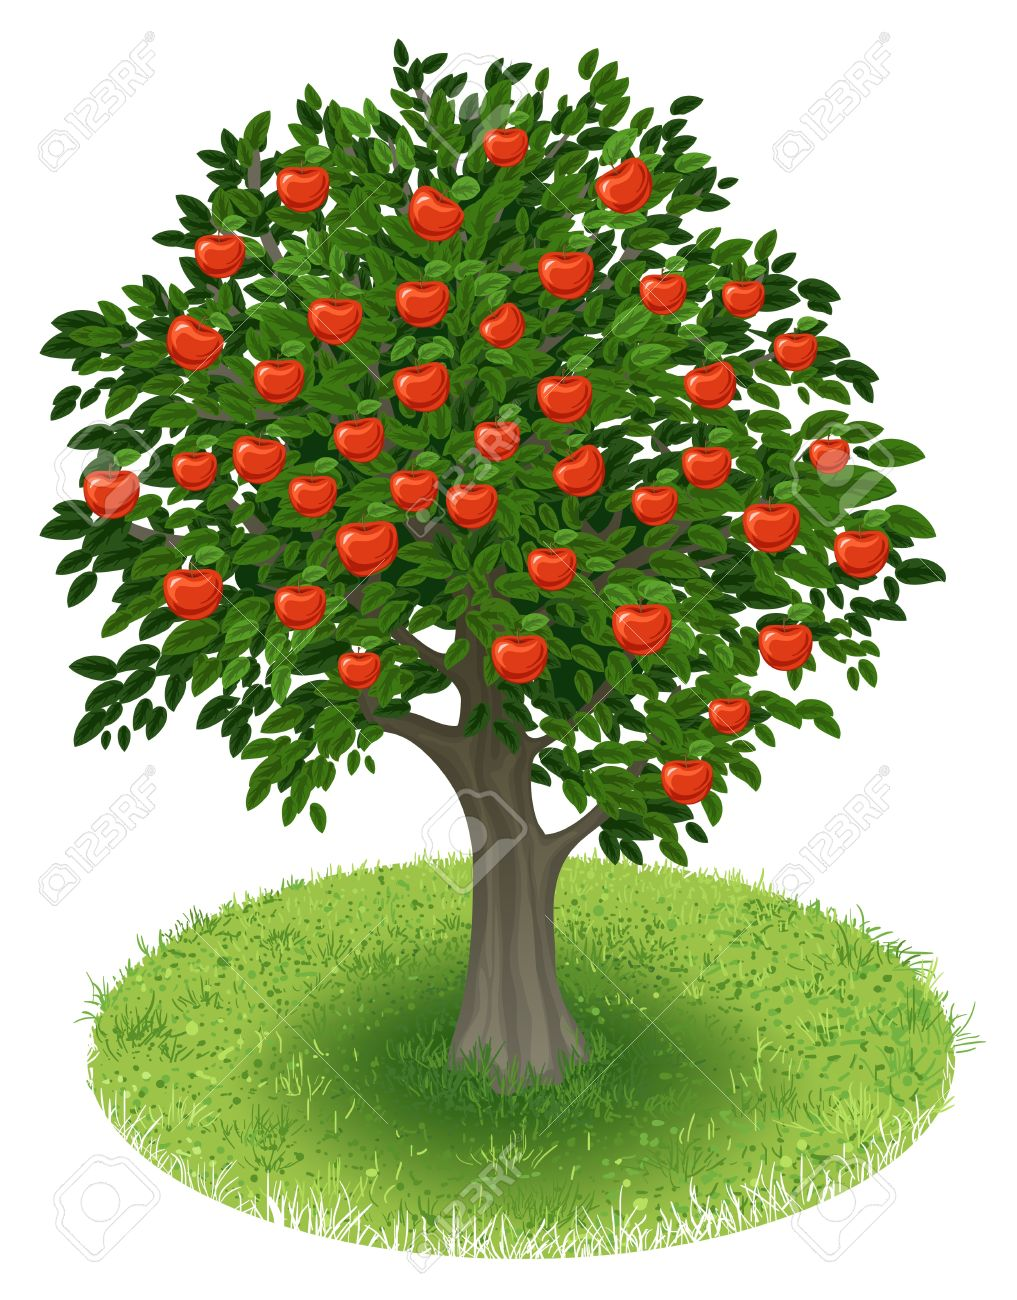 summer apple tree with red apple fruits in green field illustration rh 123rf com apple tree clipart free apple tree clipart png